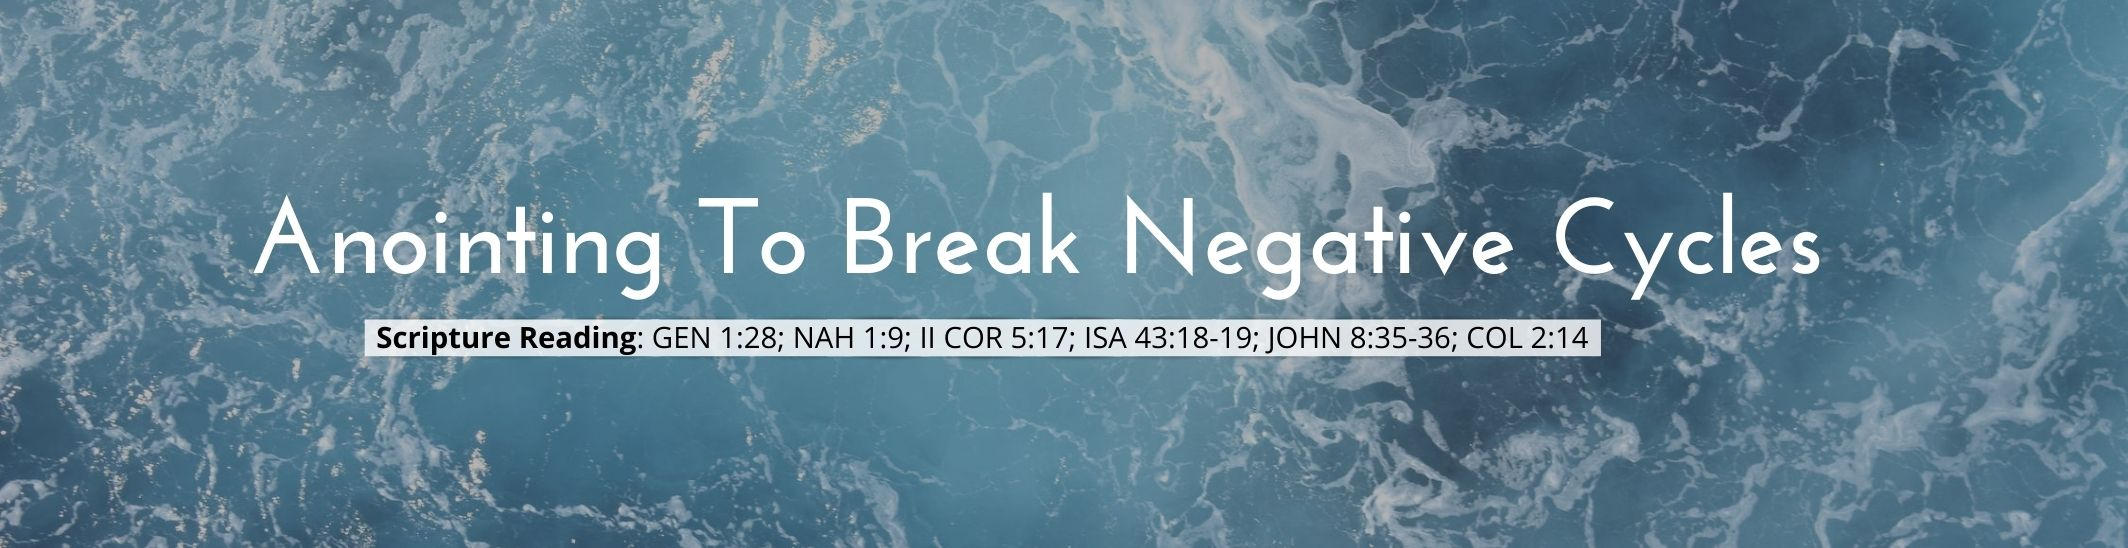 Anointing To Break Negative Cycles - CFAN CHicago